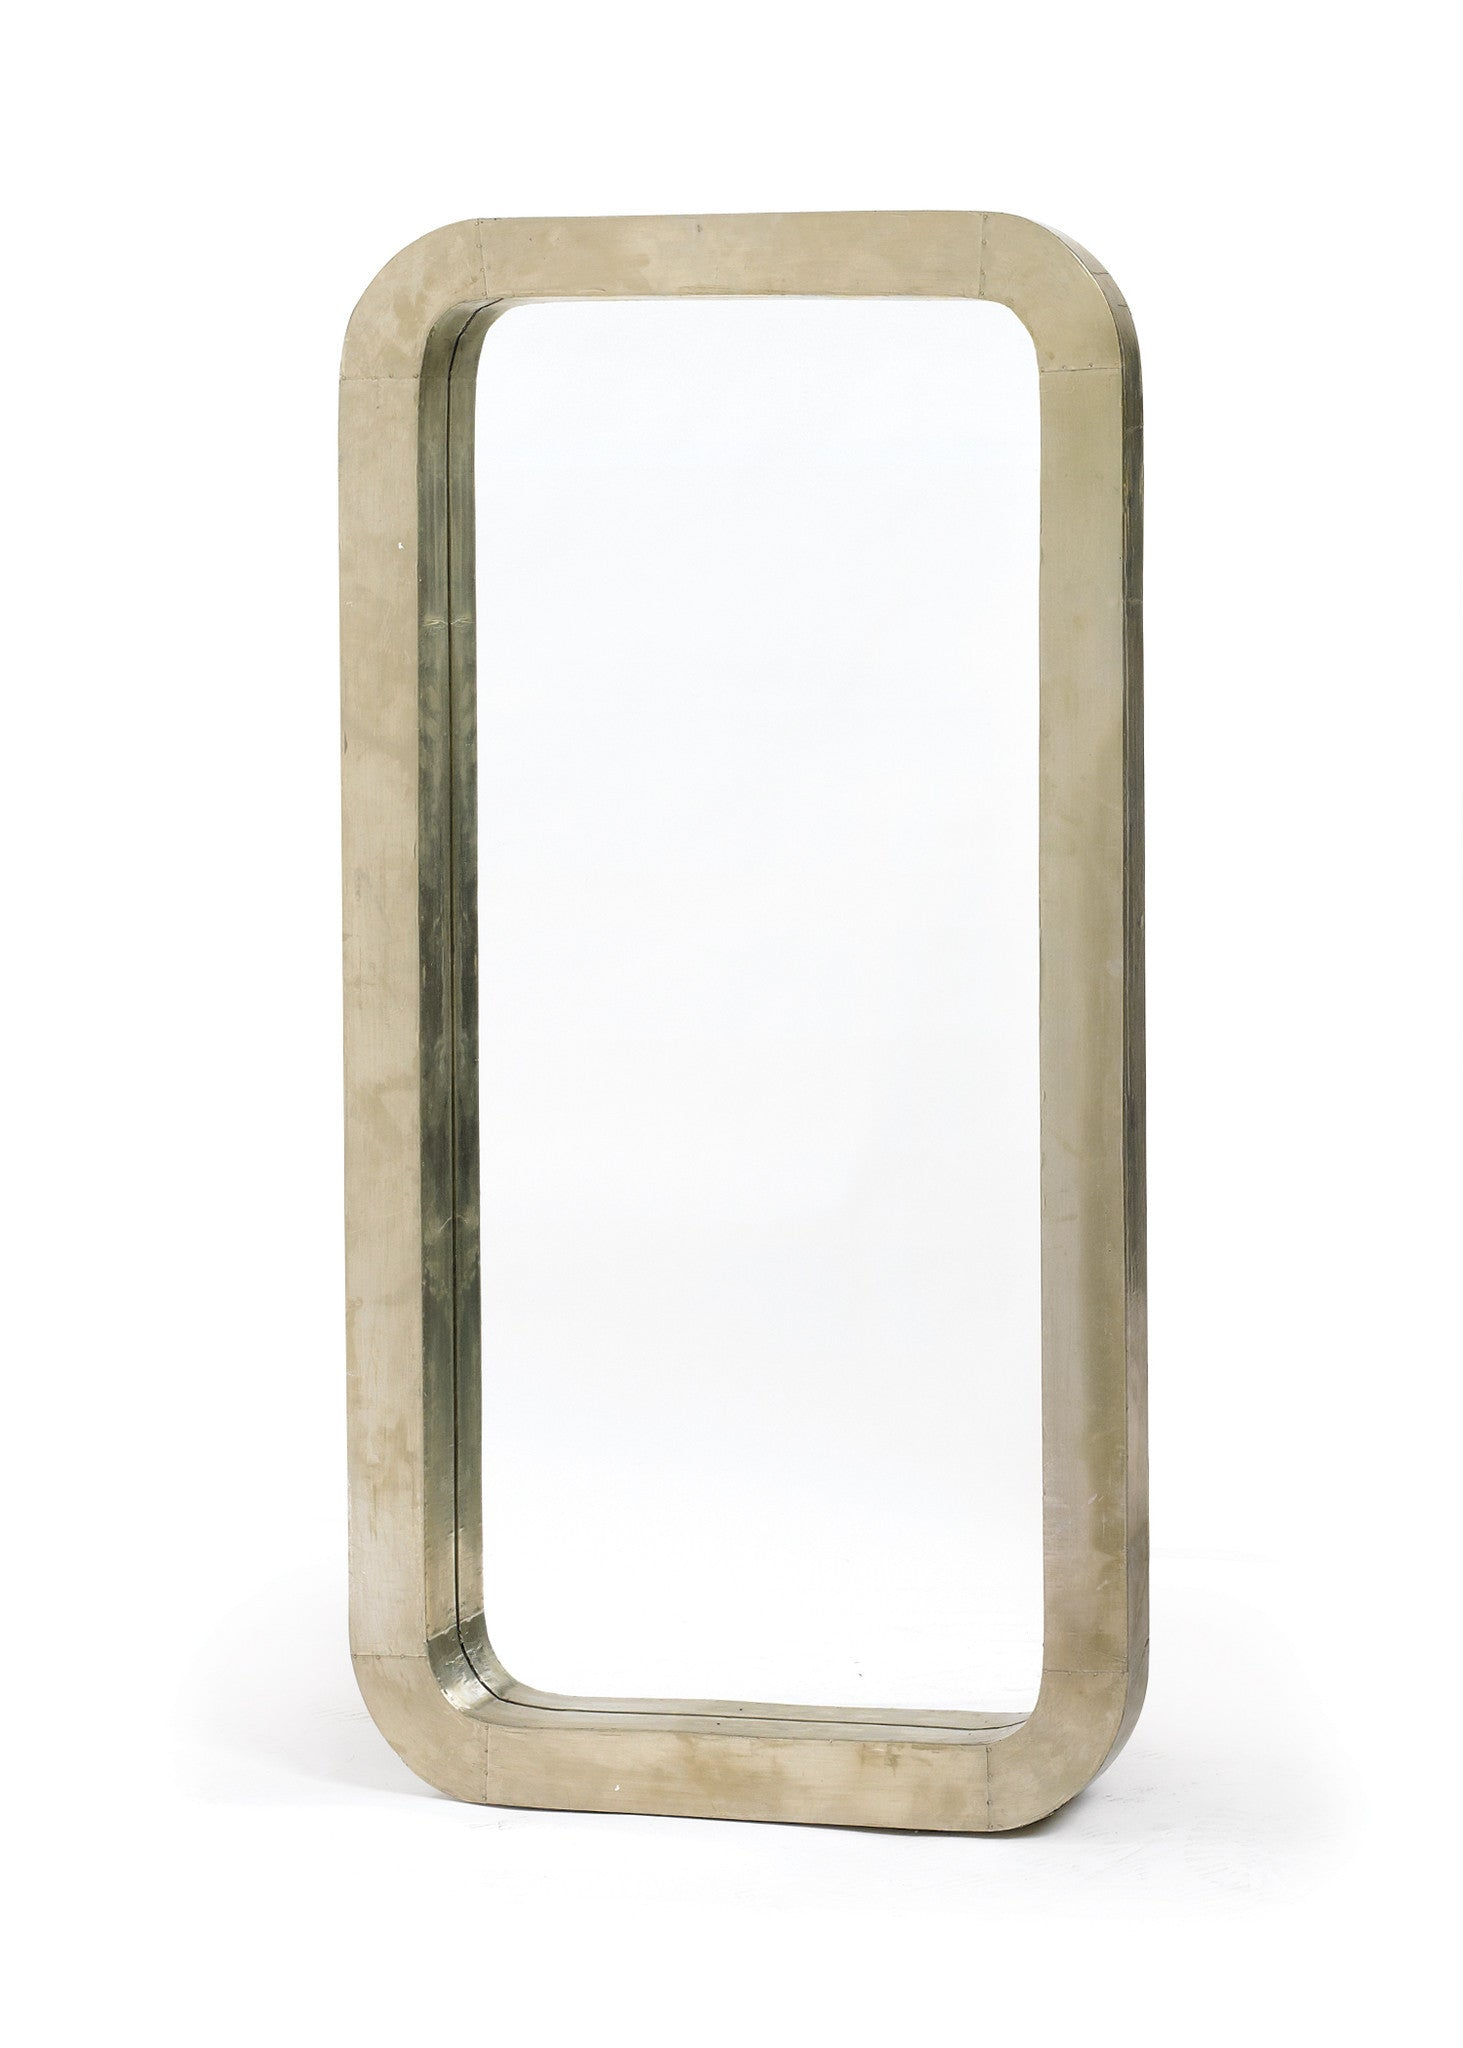 Smooth Frame Mirror in Nickel over Wood Frame